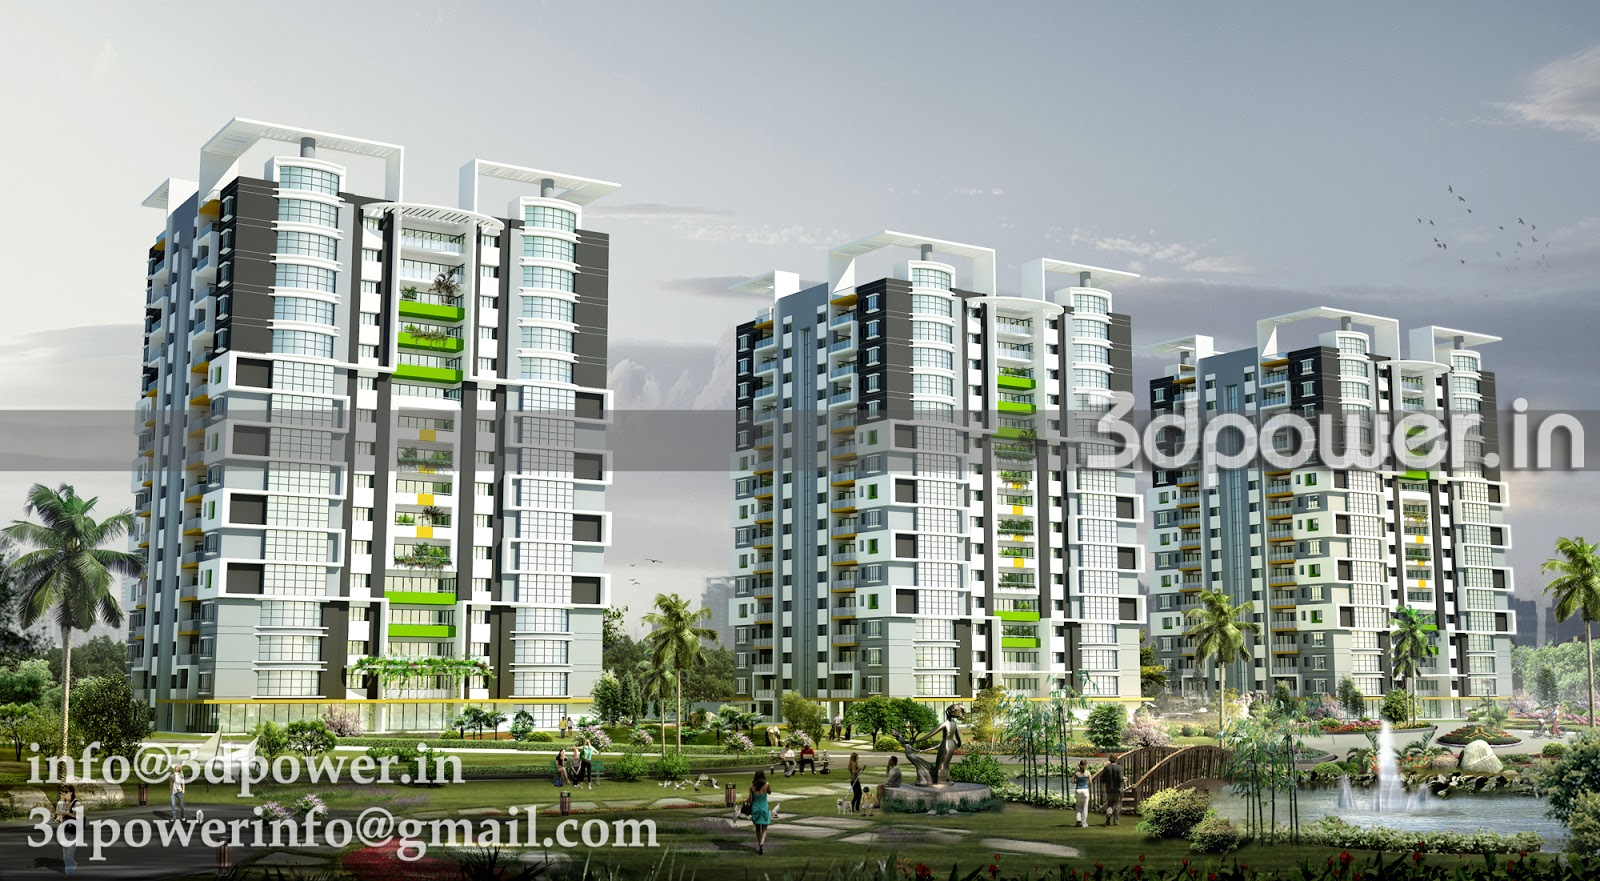 High Rise Apartment Design Exterior 3d animation, 3d rendering, 3d walkthrough, 3d interior, cut